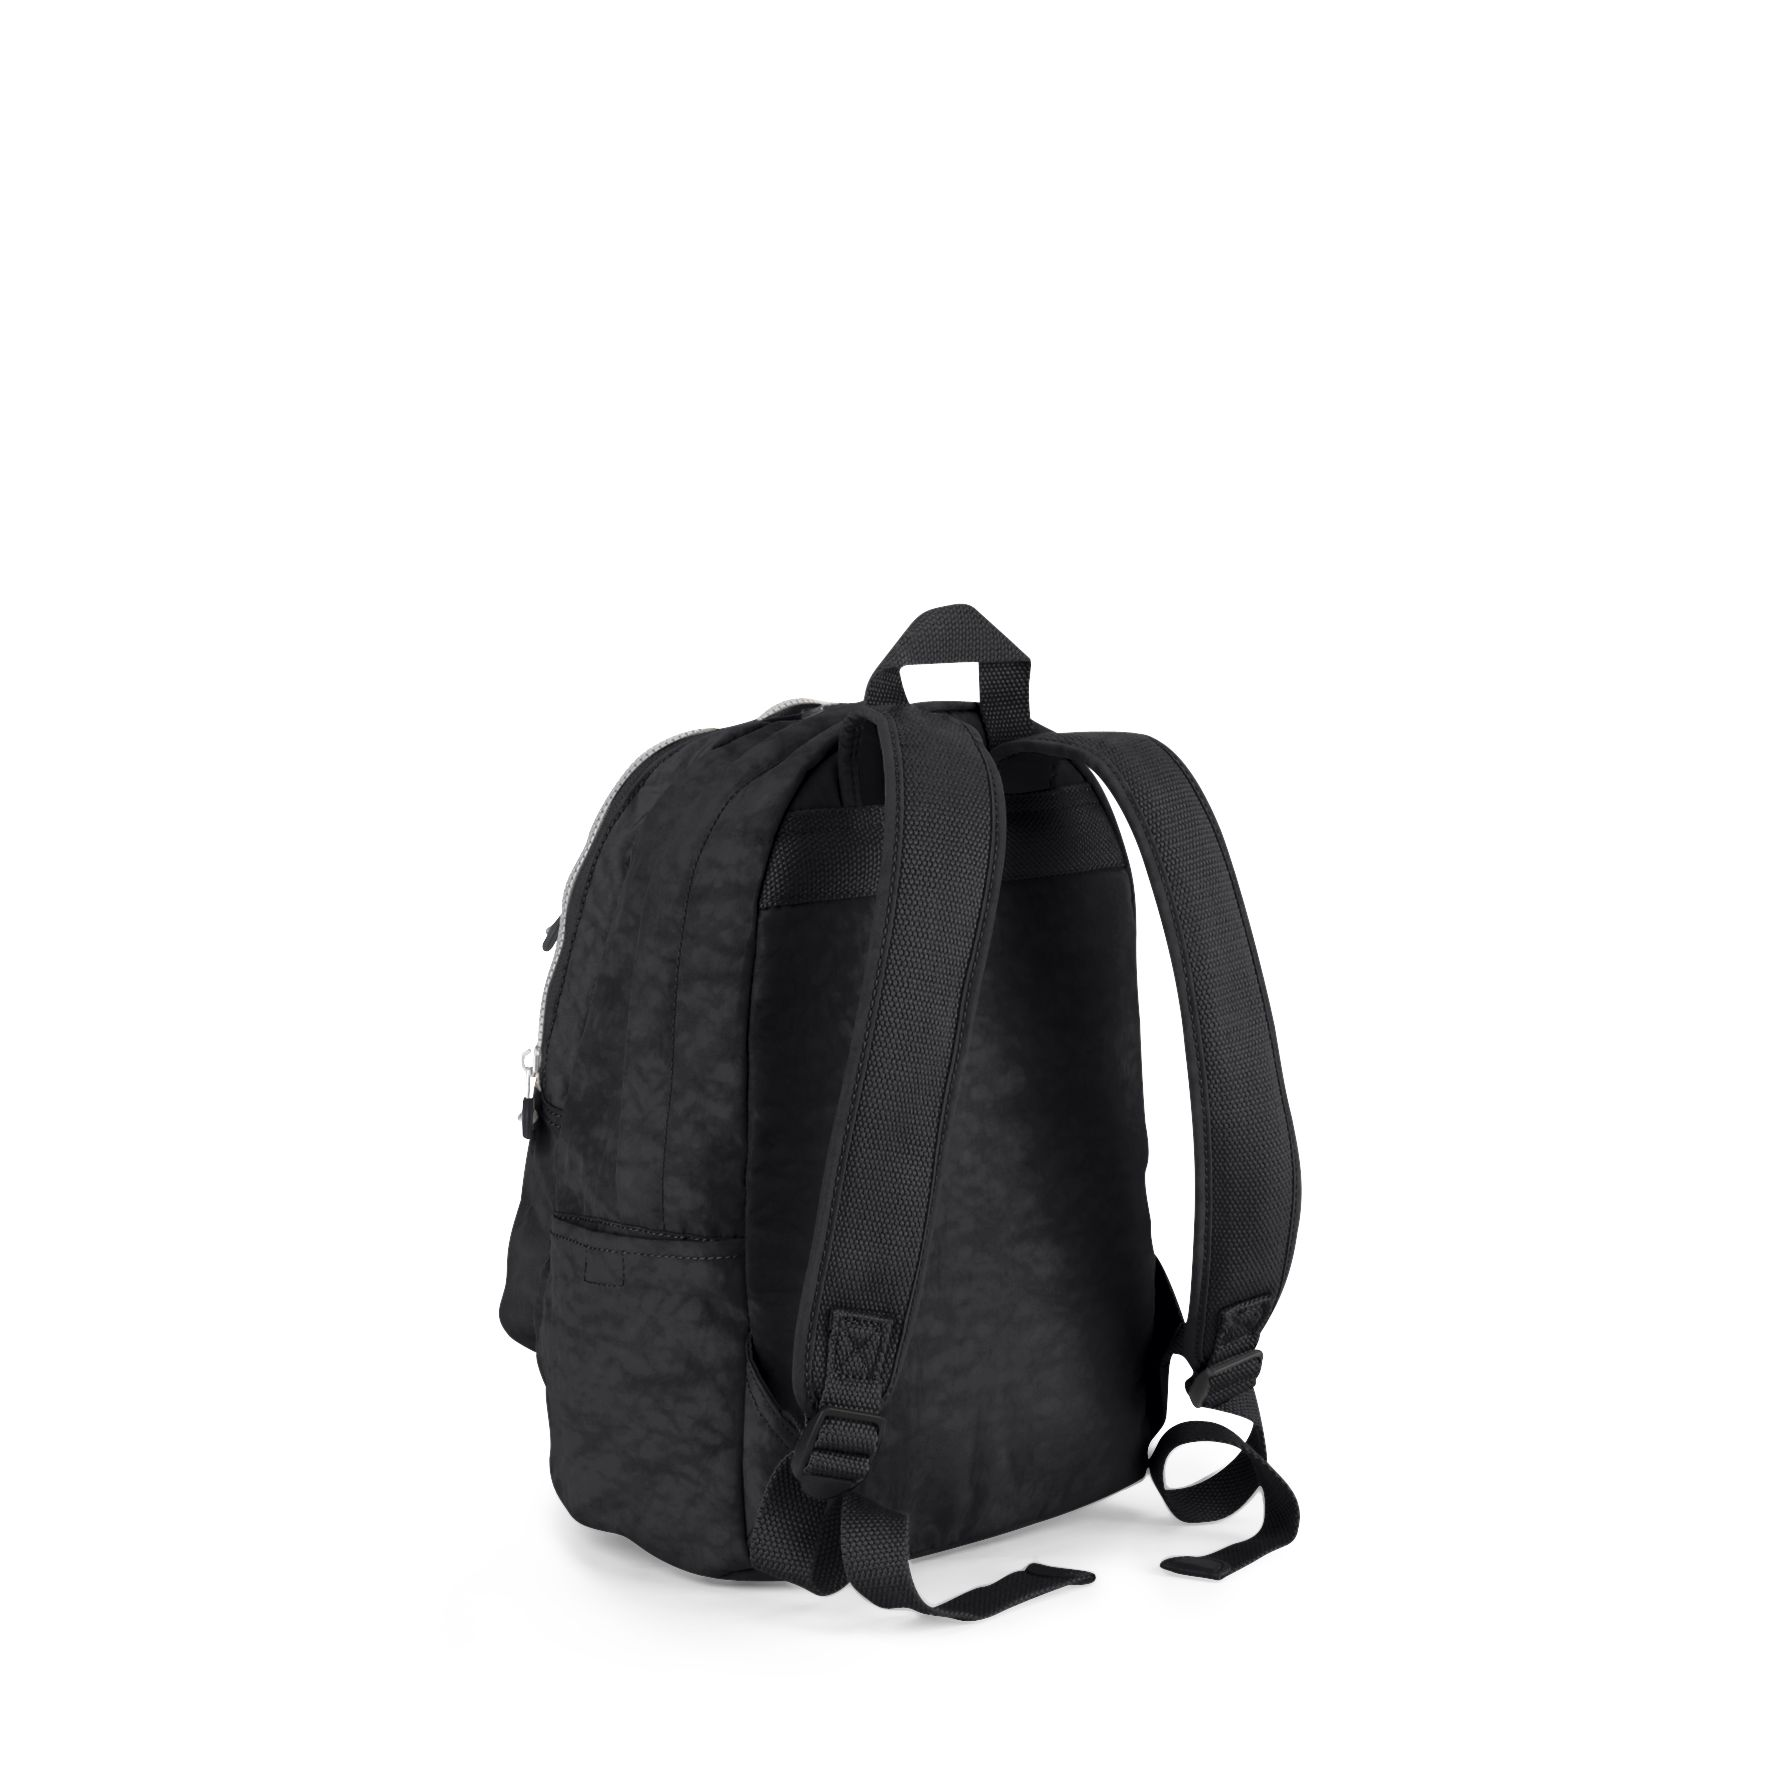 Clas challenger medium backpack